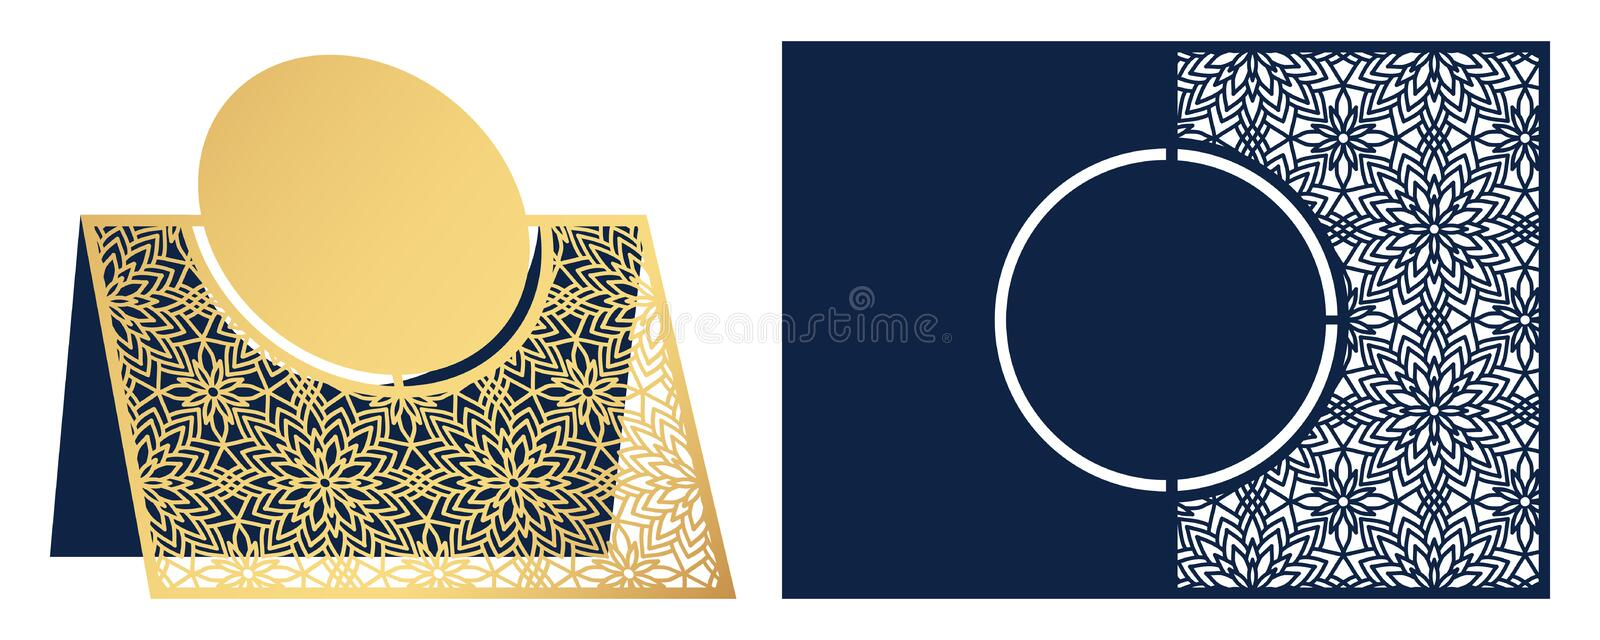 Laser cut ornamental vector template. Freestanding table Number, Name, Place, Wedding seats card, Table guests or dining table ca royalty free illustration